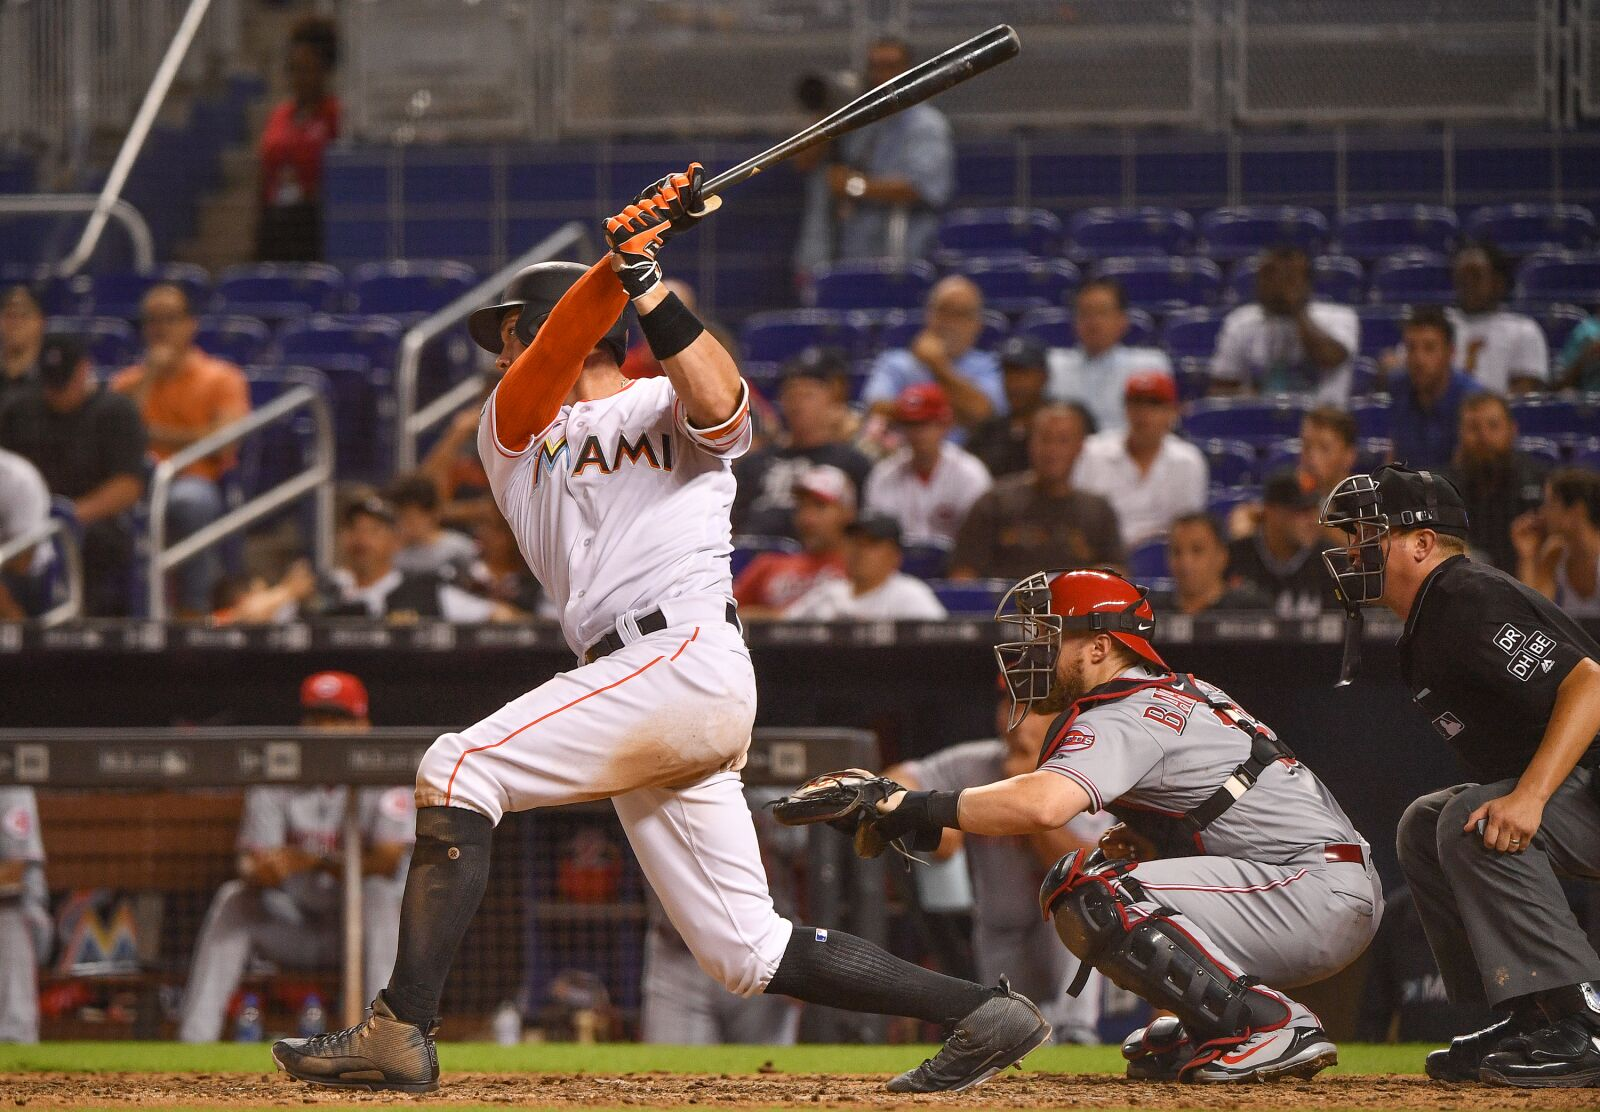 Miami Marlins Option Peter O'Brien to New Orleans Baby Cakes